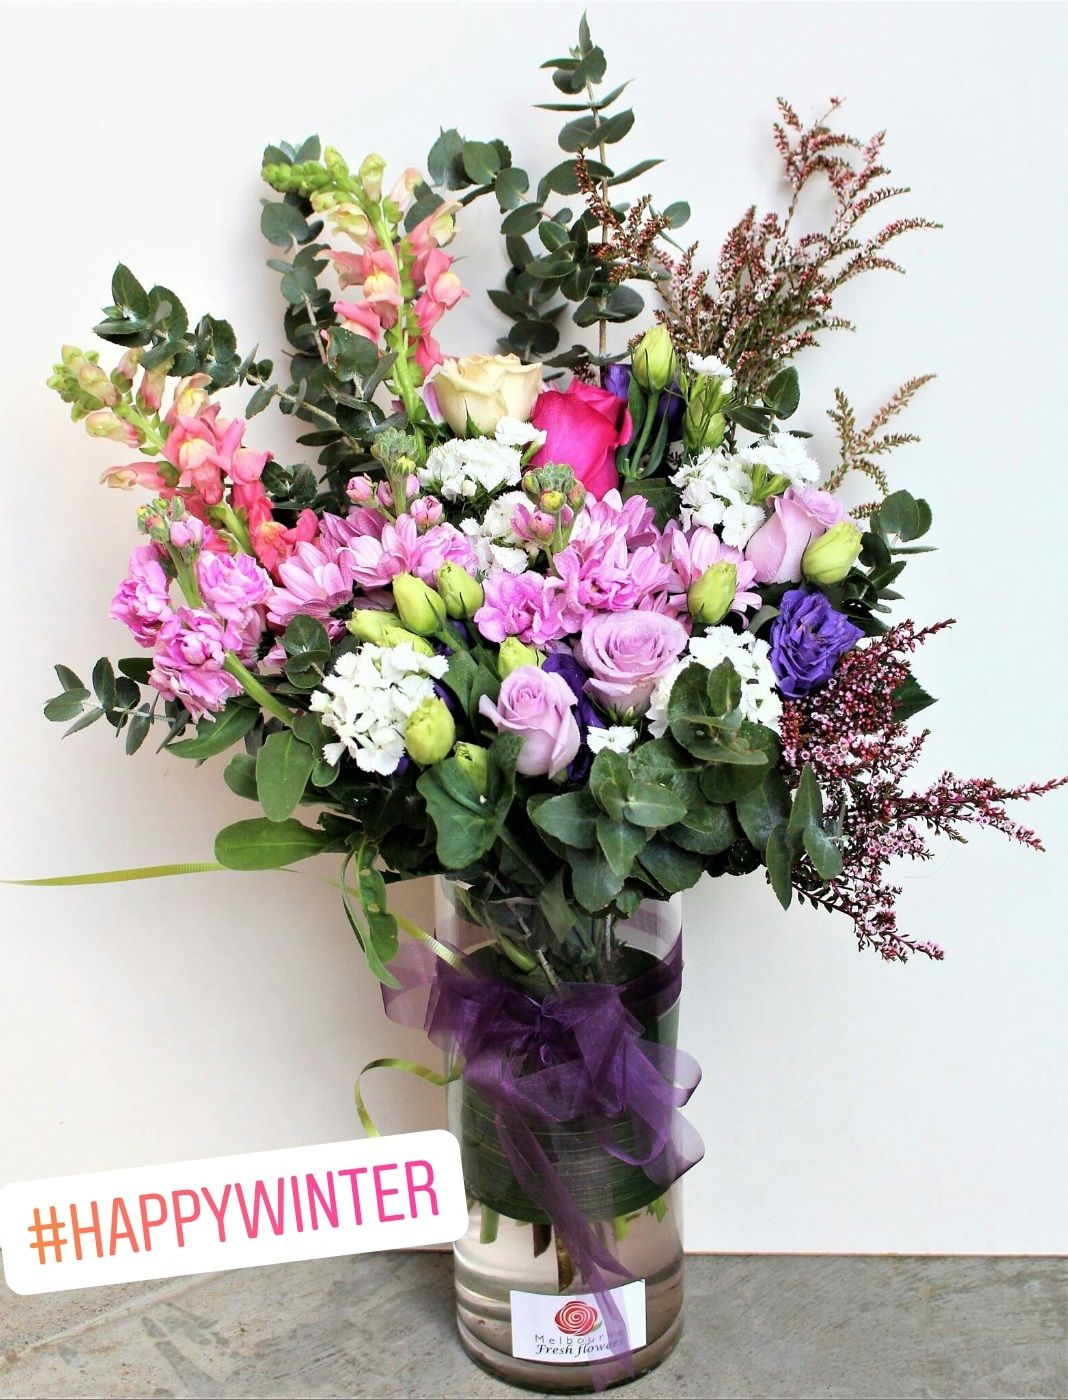 Pin by Melbourne Fresh Flowers on Flower Delivery in